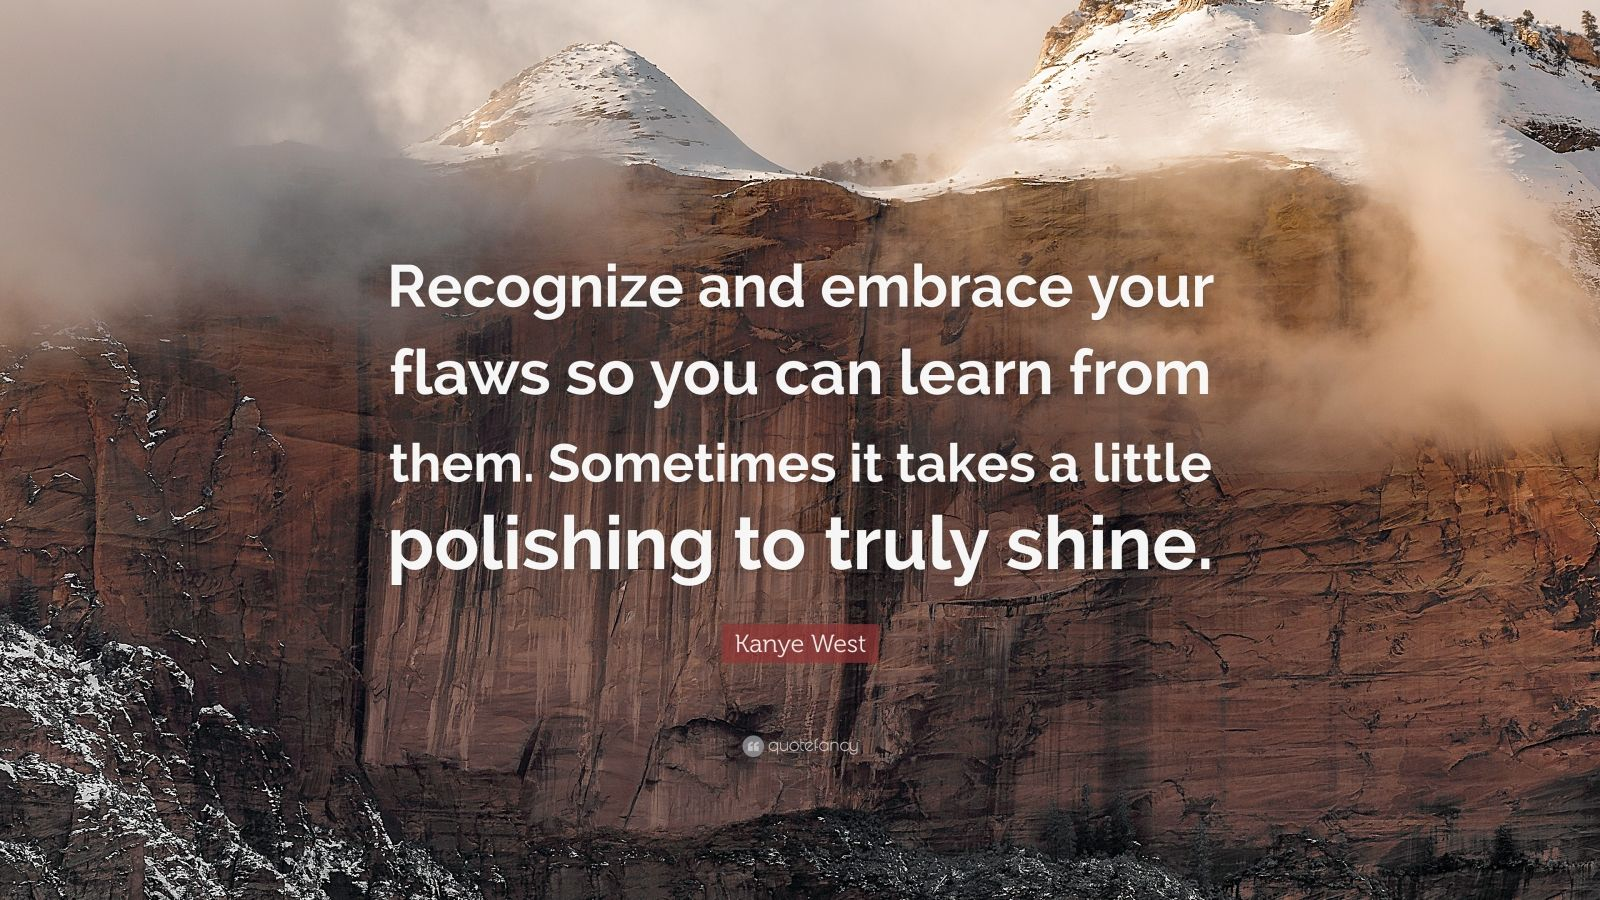 """Kanye West Quote: """"Recognize and embrace your flaws so you can learn from them. Sometimes it takes a little polishing to truly shine."""""""